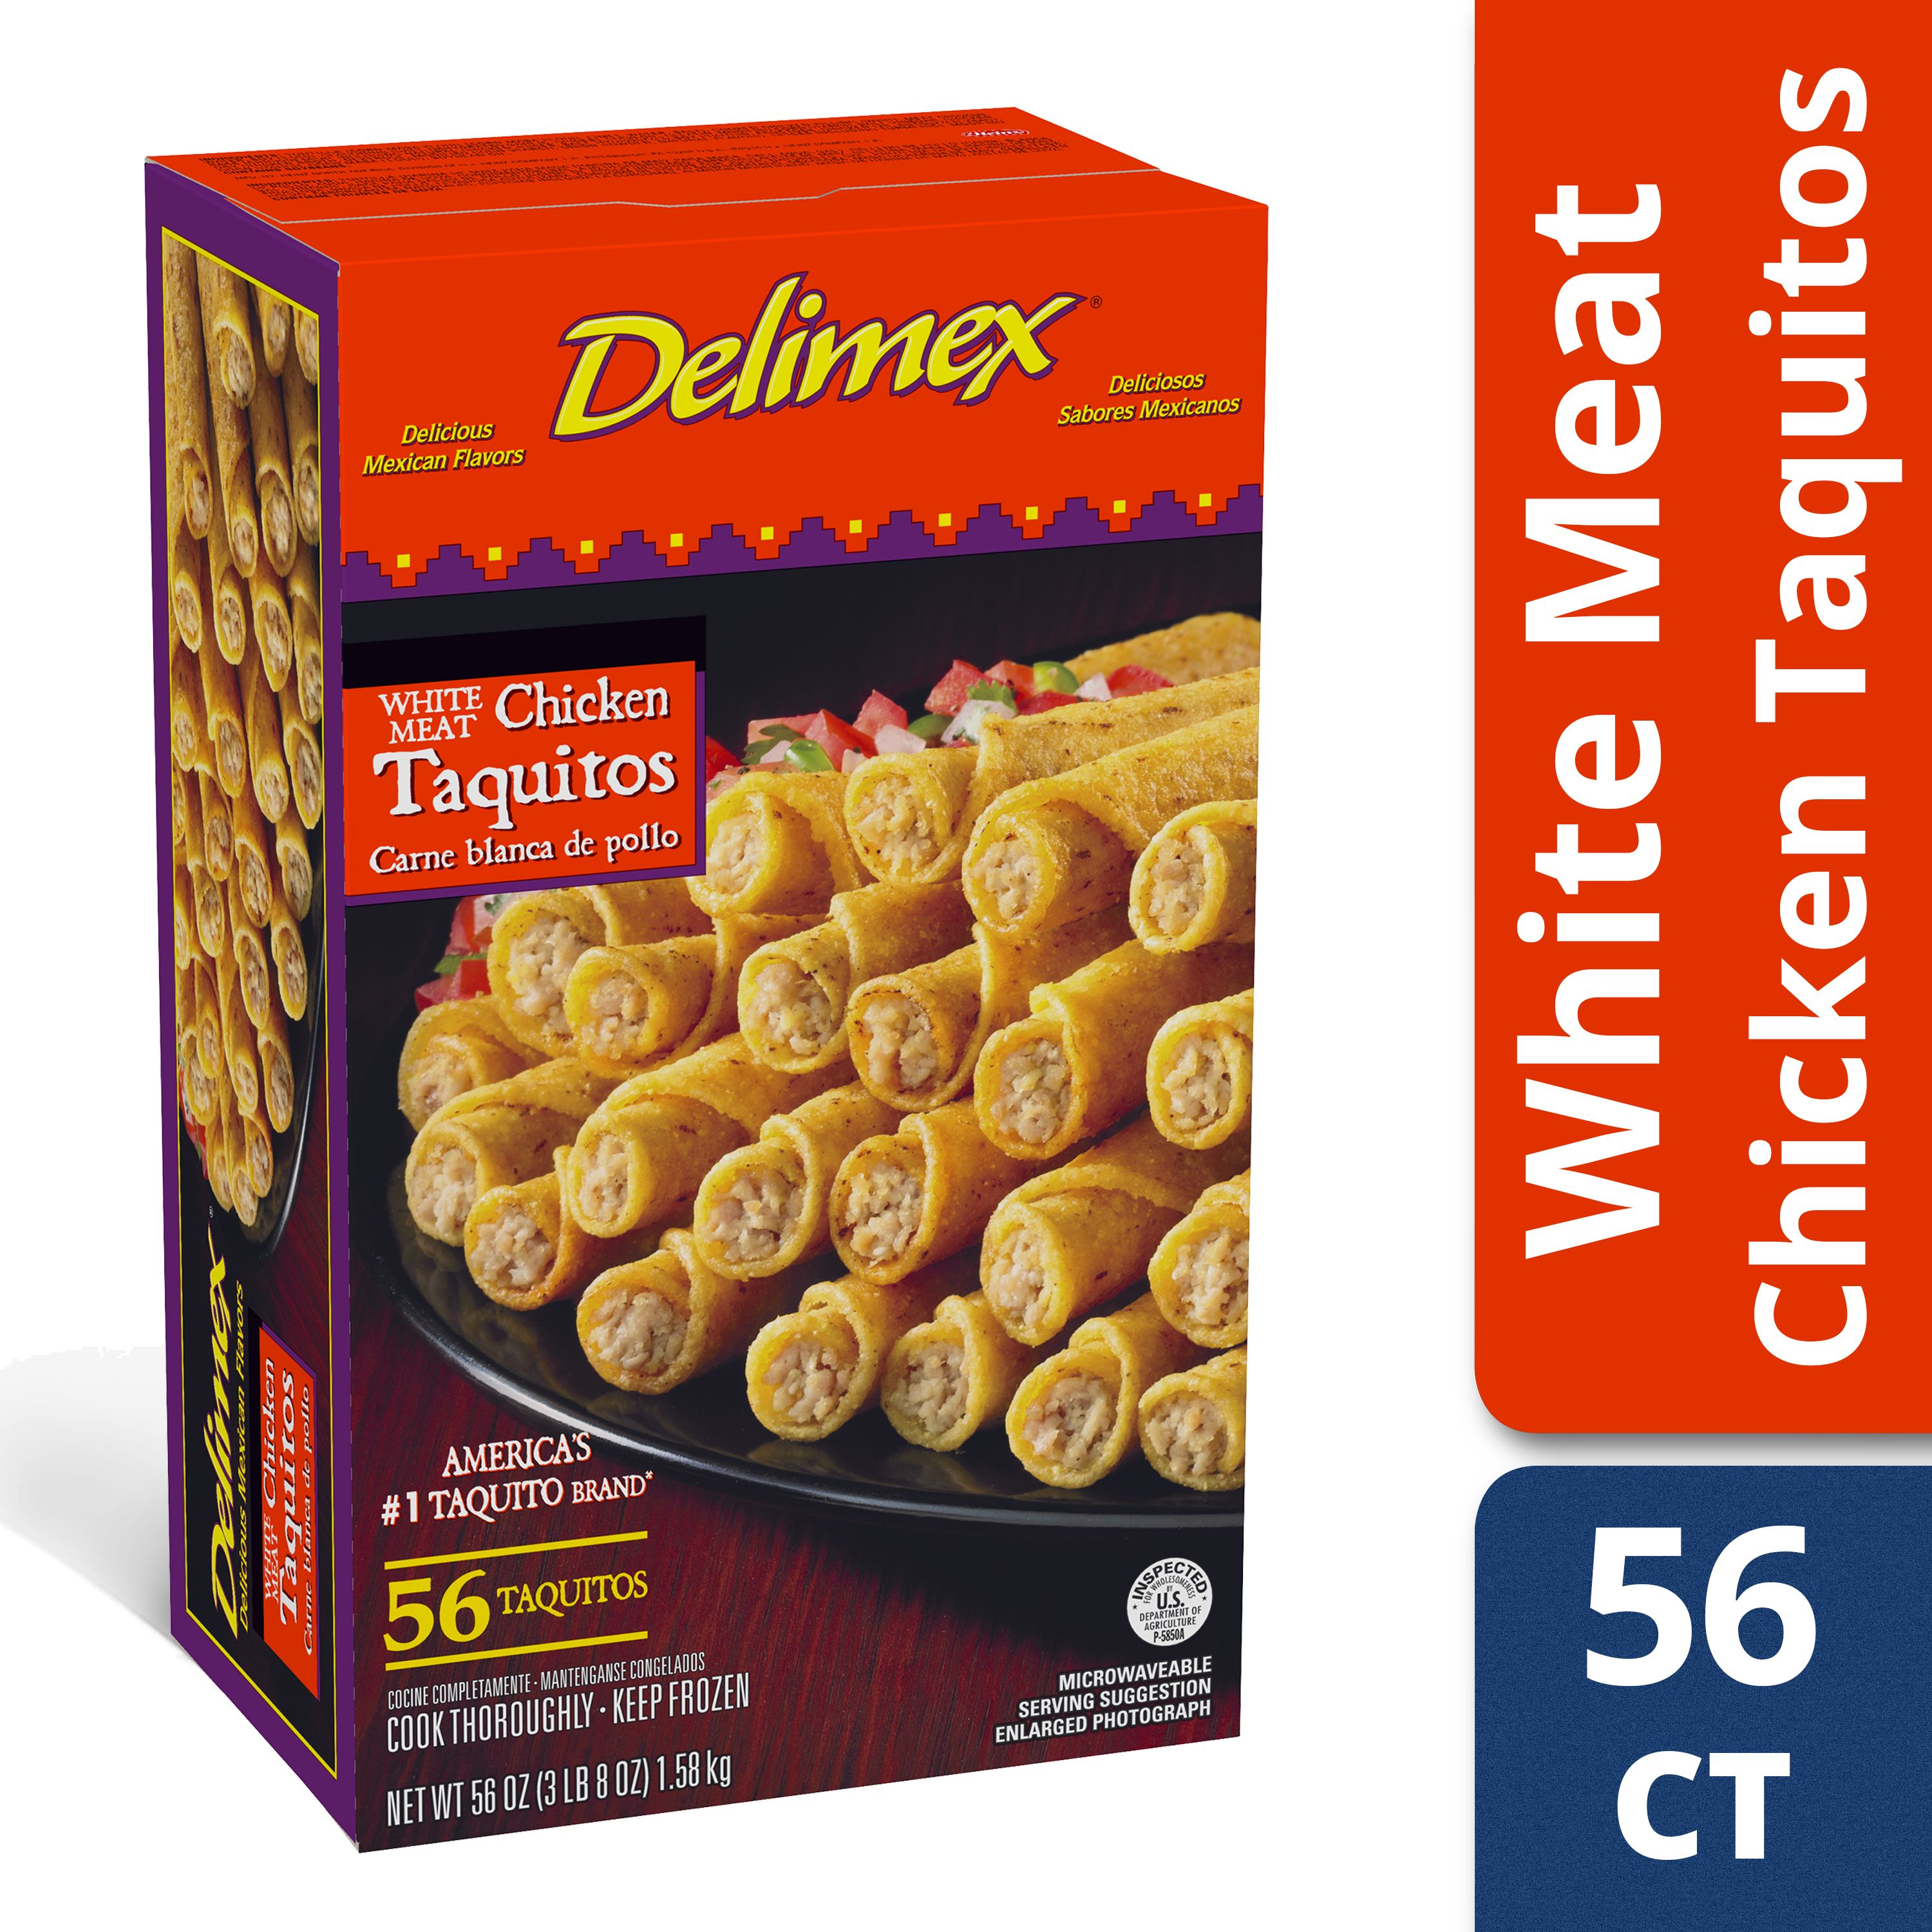 Delimex White Meat Chicken Taquitos 56 count Box